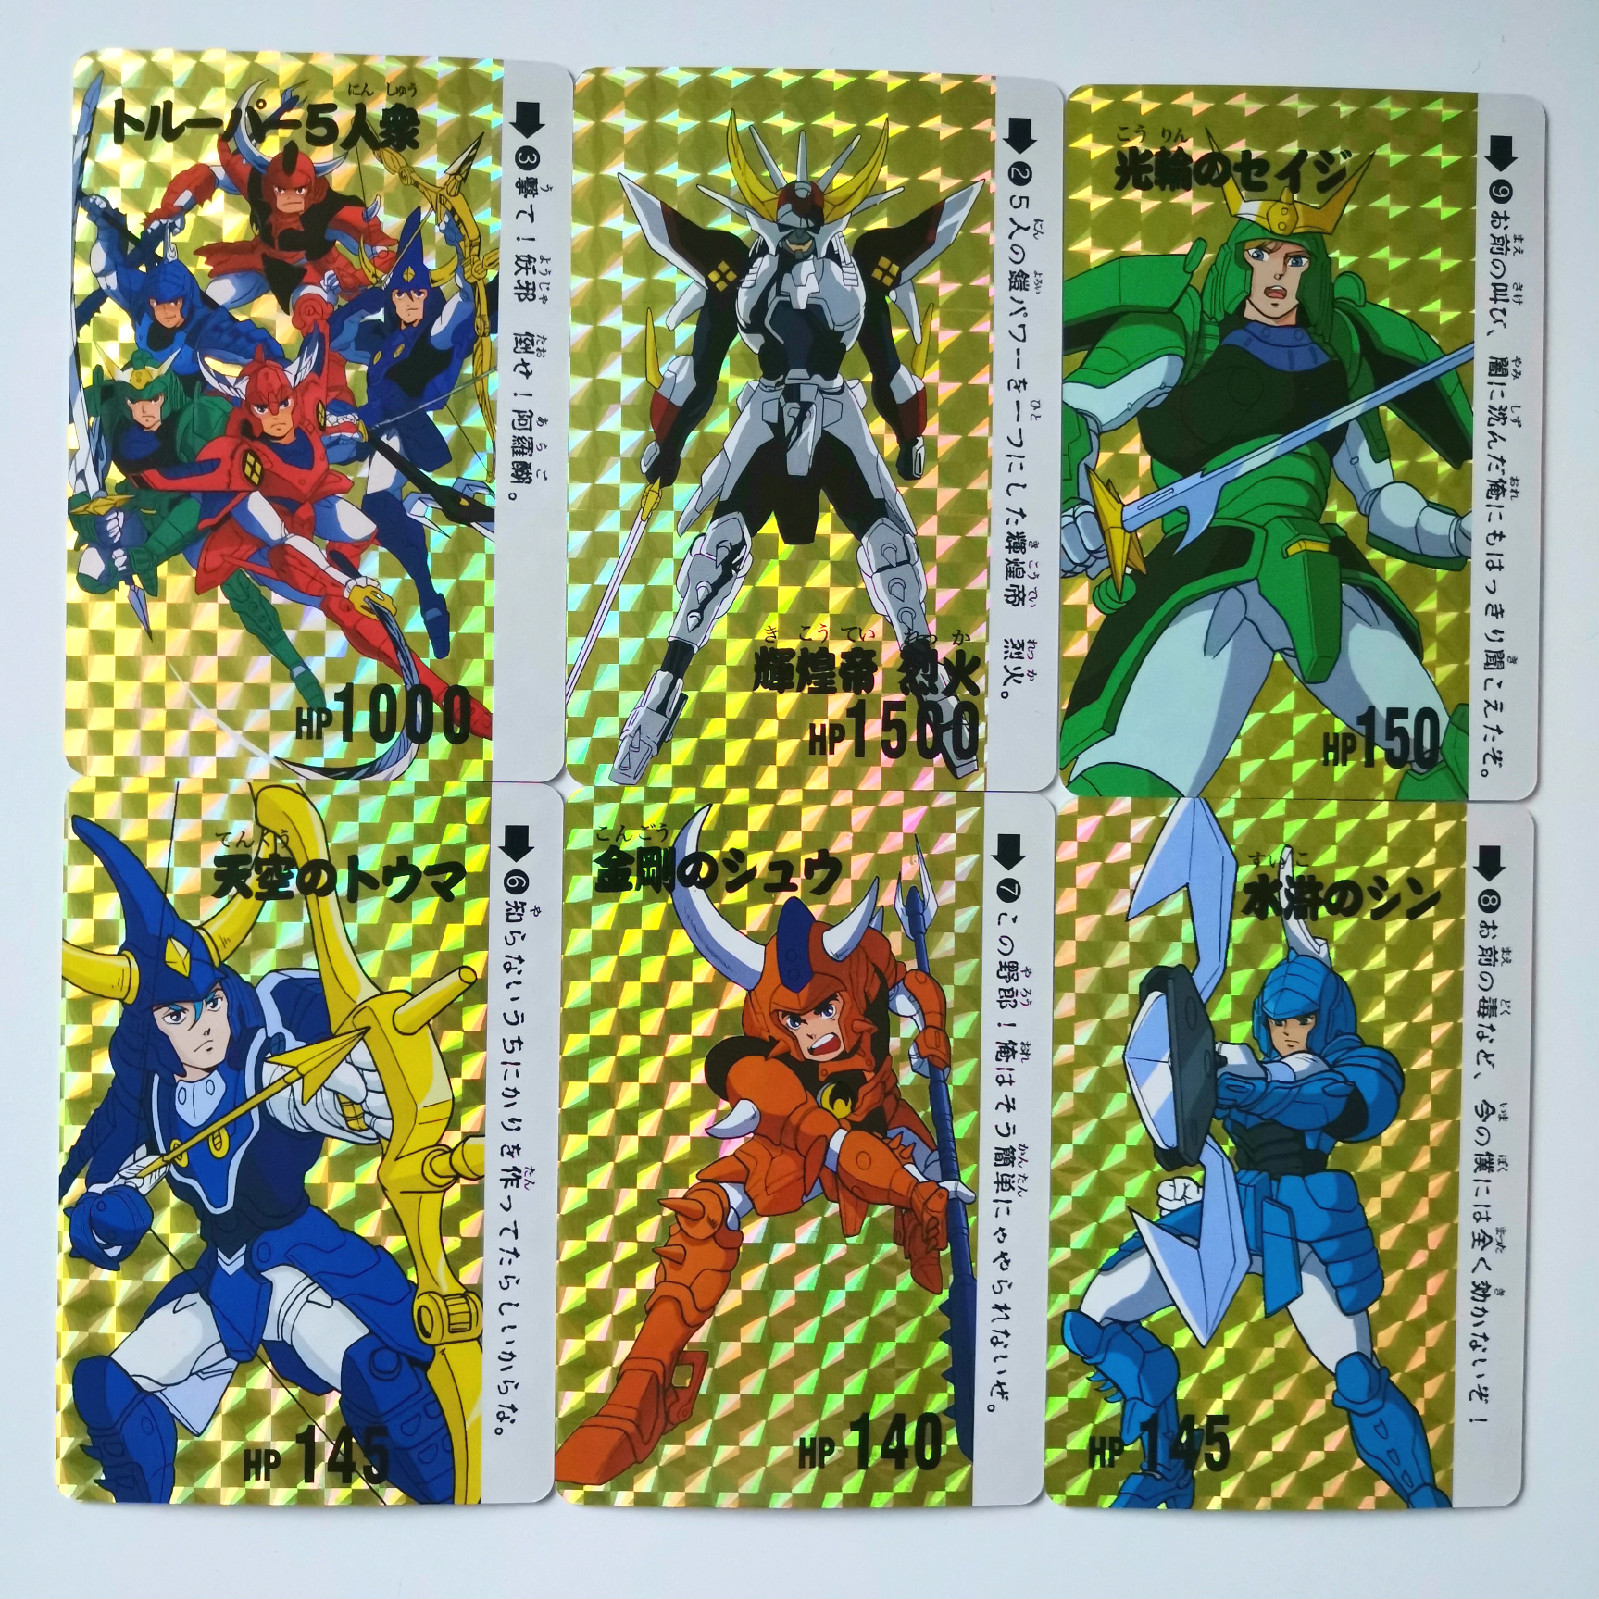 9pcs/set YoroiDen-Samurai Troopers Ronin Warriors Toys Hobbies Hobby Collectibles Game Collection Anime Cards